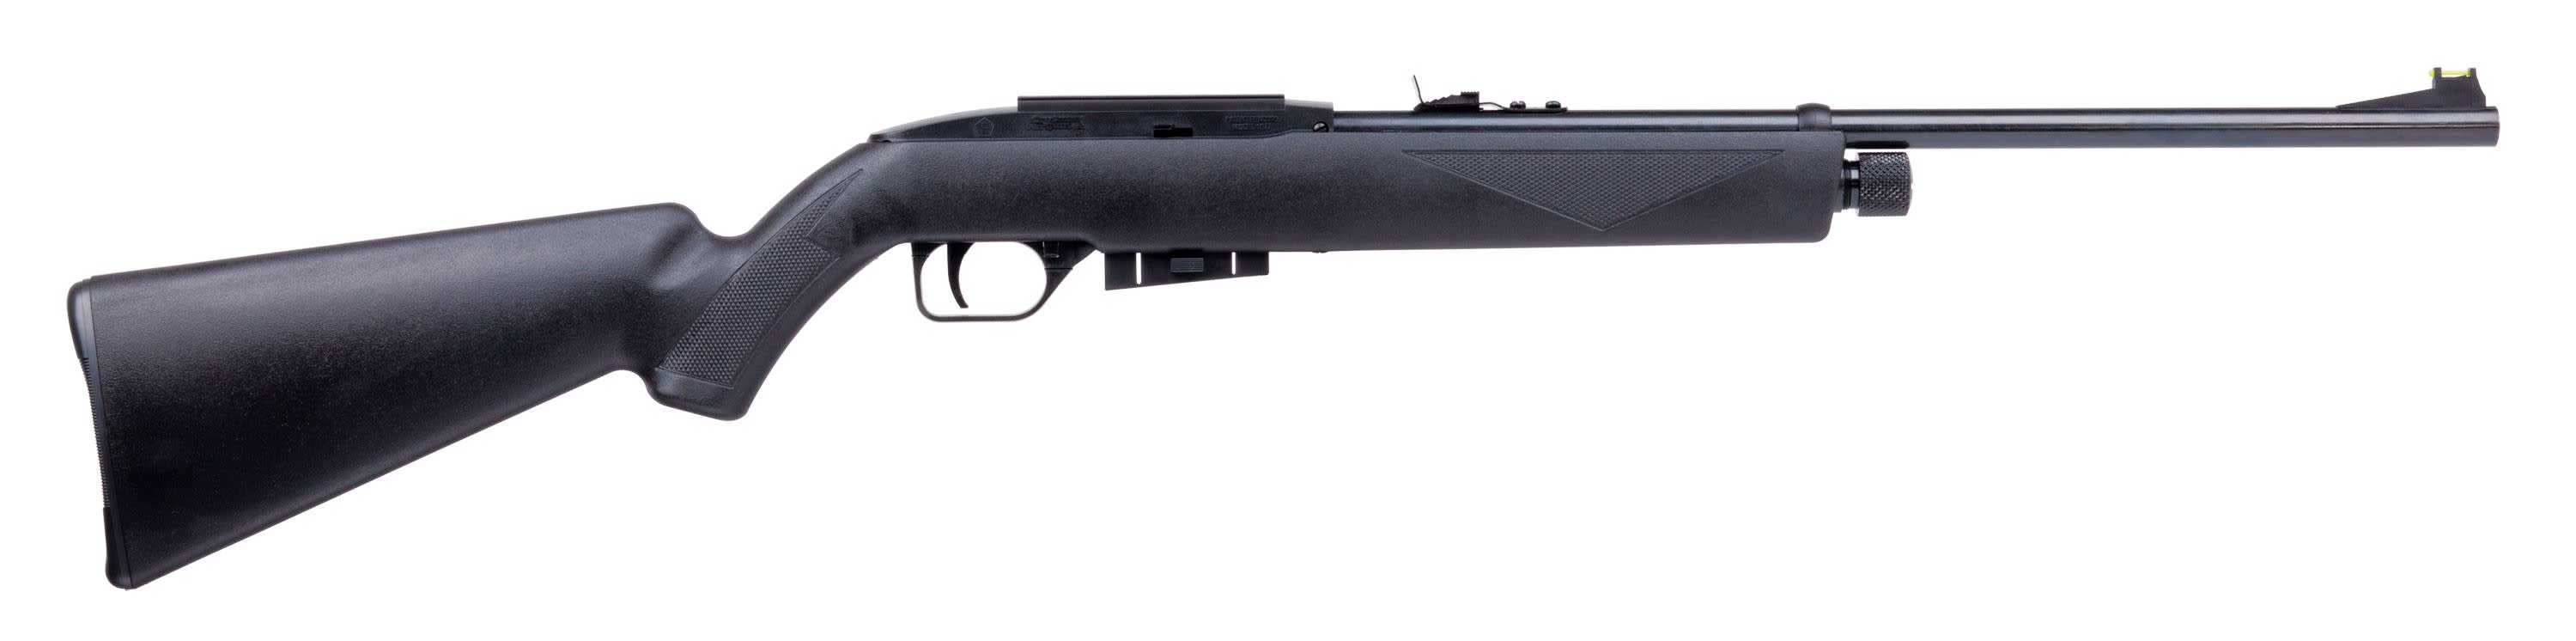 Crosman RepeatAir 1077 Air Rifle CO2 Semi-Automatic .177 Pellet